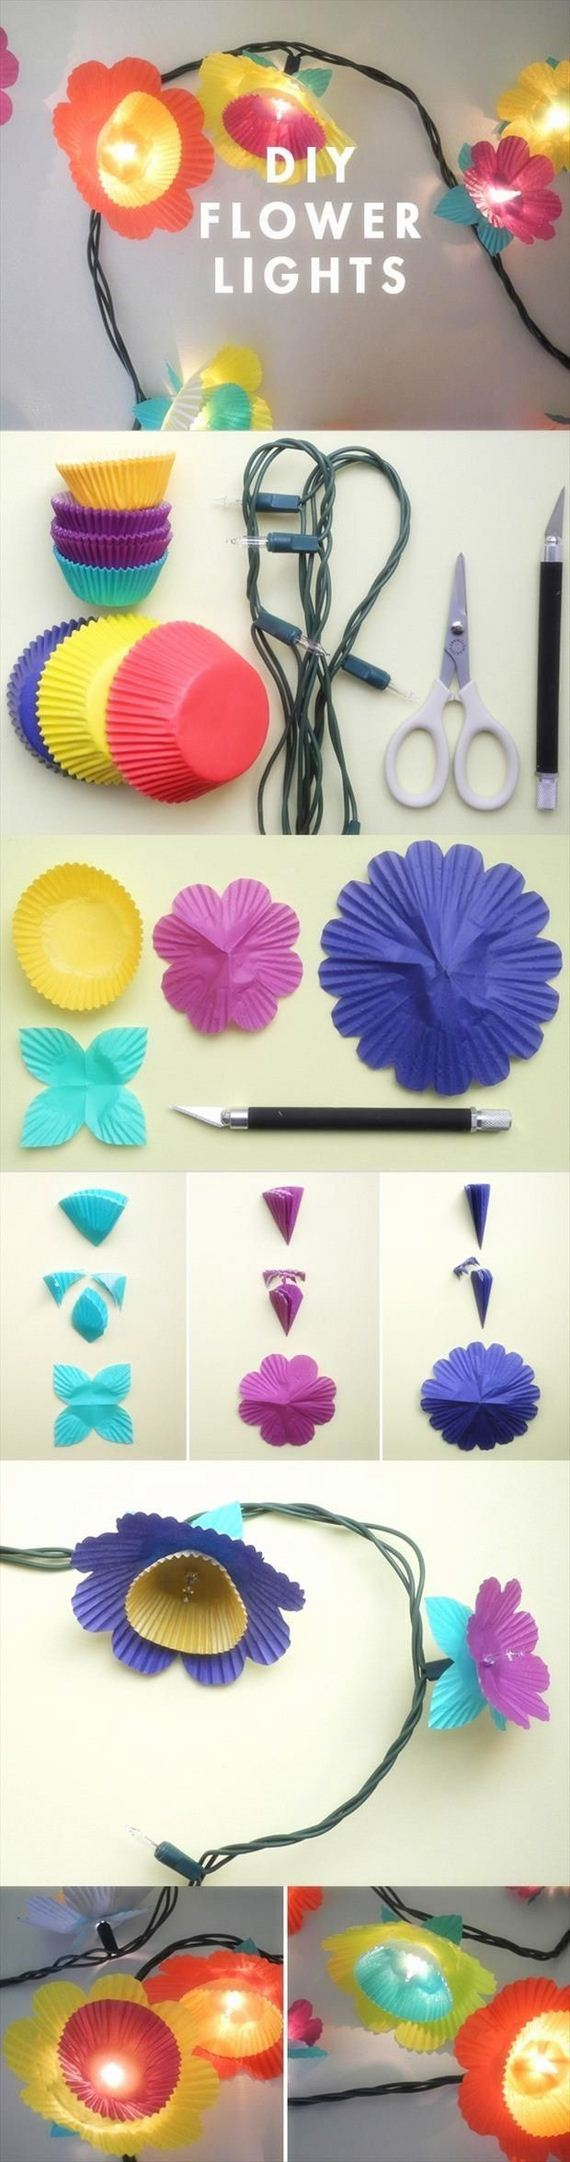 22-diy-home-craft-ideas-and-tips-thrifty-home-decor